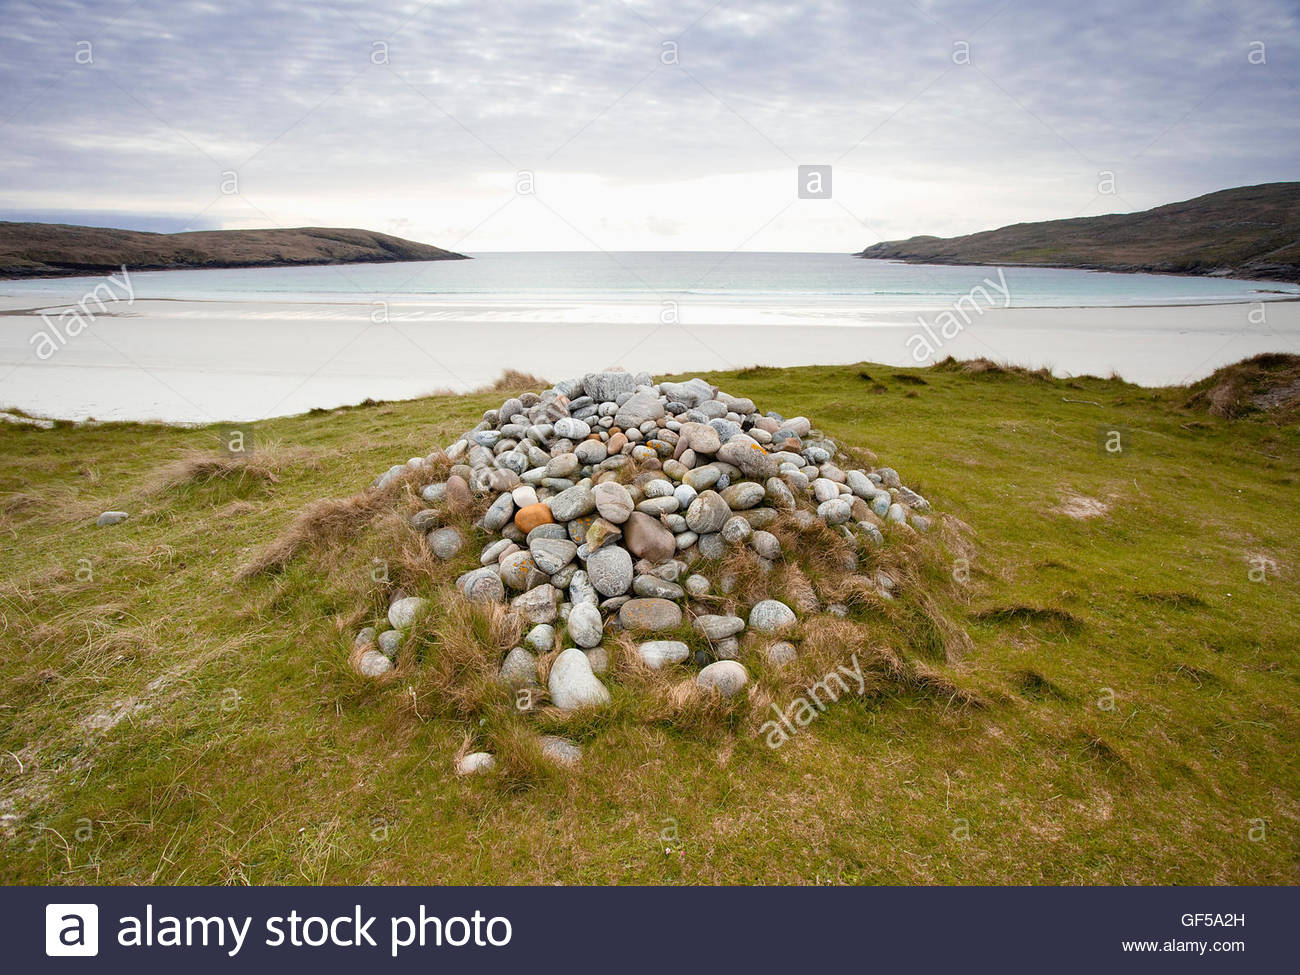 The Annie Jane Cairn above West Bay on the Island of Vatersay, Outer Hebrides, Scotland. - Stock Image